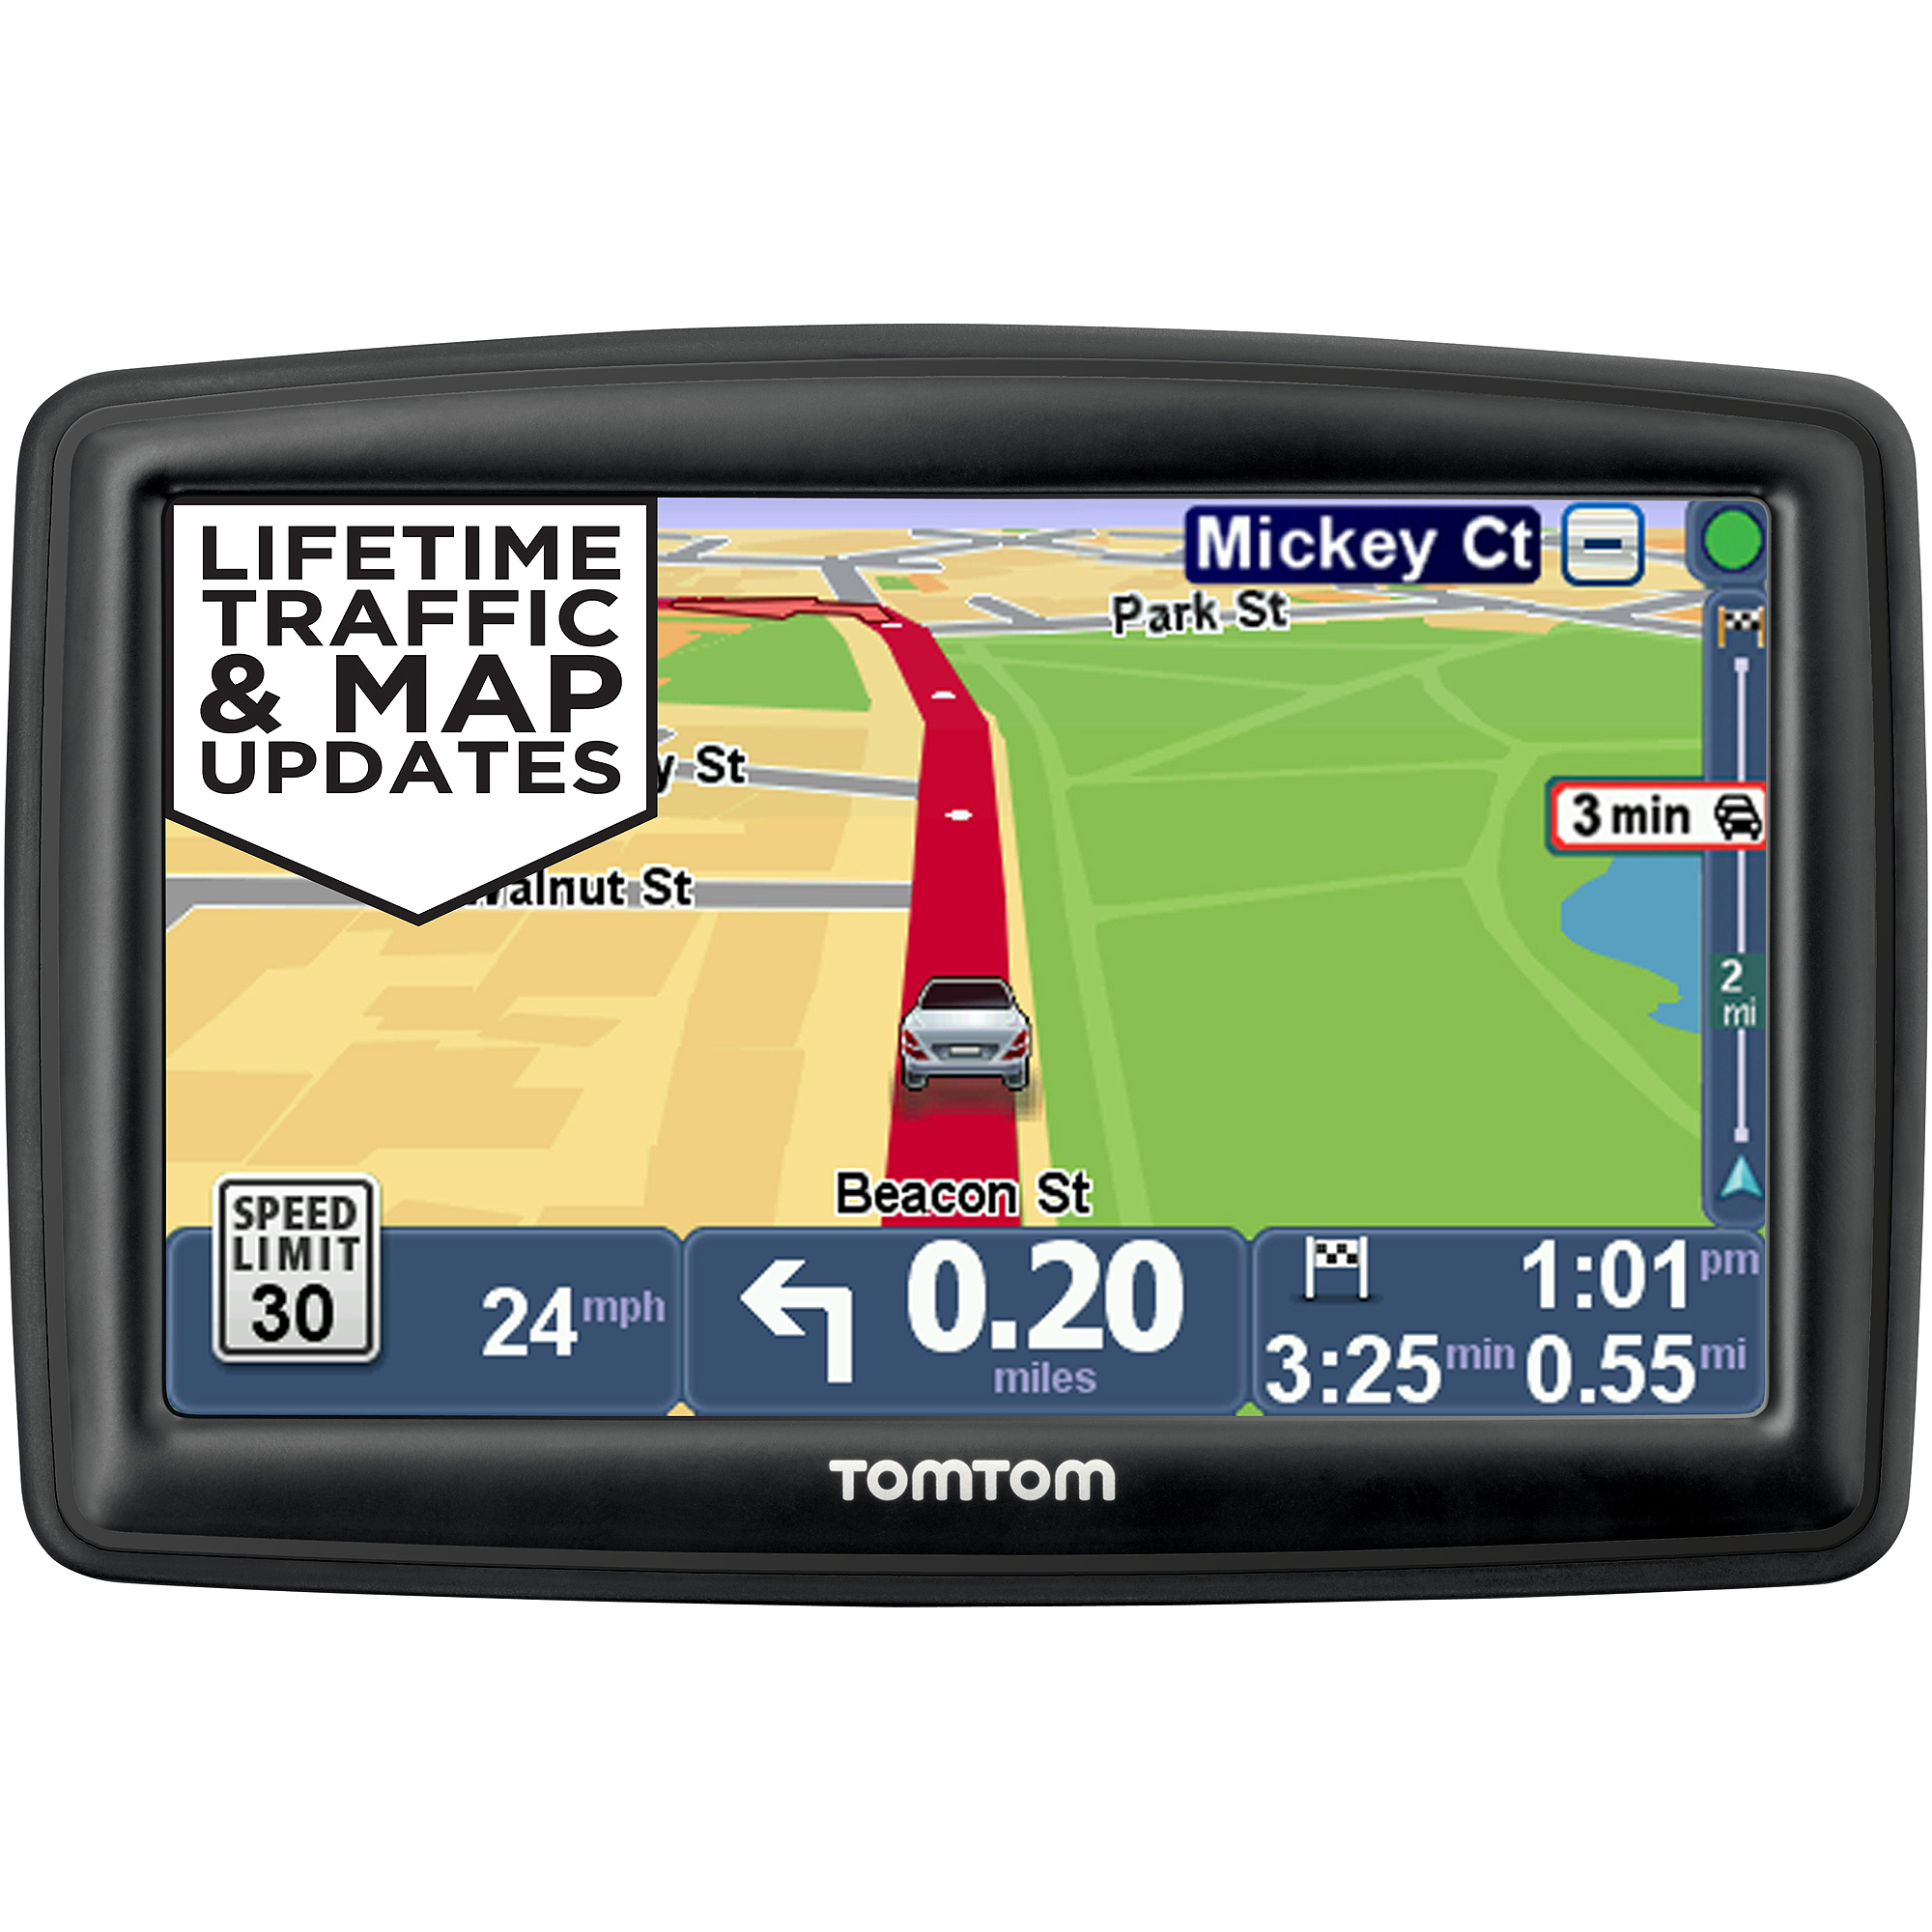 Tomtom Start TM GPS Navigator With Lifetime Traffic  Maps - Tomtom gps usa map download free